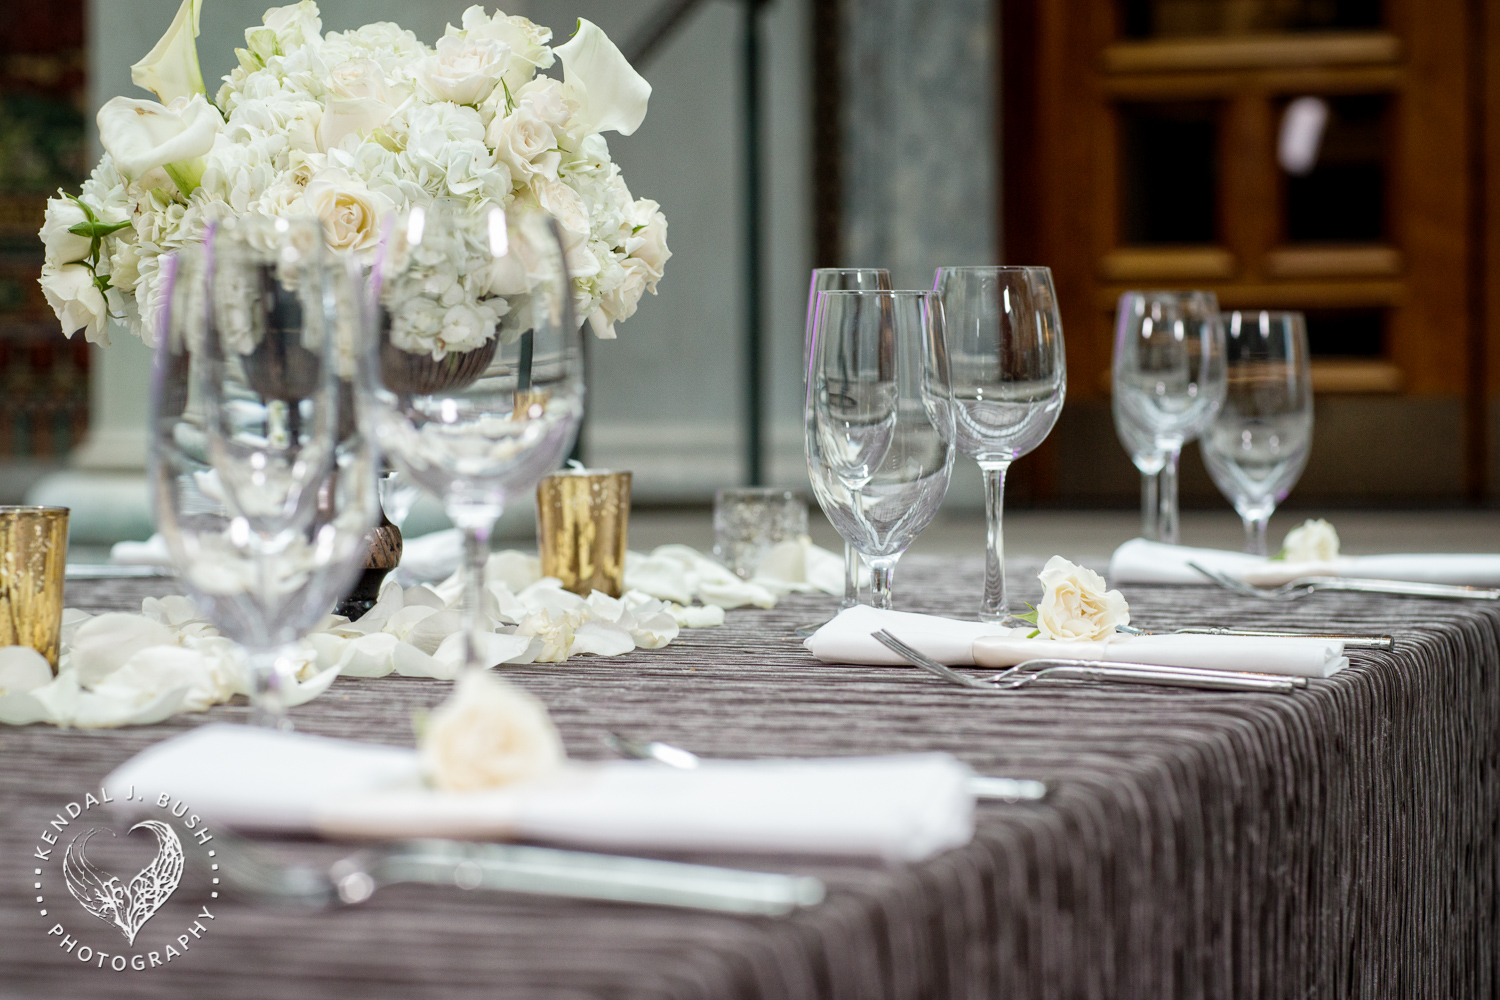 Featured level two, Illustration with taupe Romance linen, and fresh vendela rose petals down the center of the table. Image by Kendal J. Bush Photography.